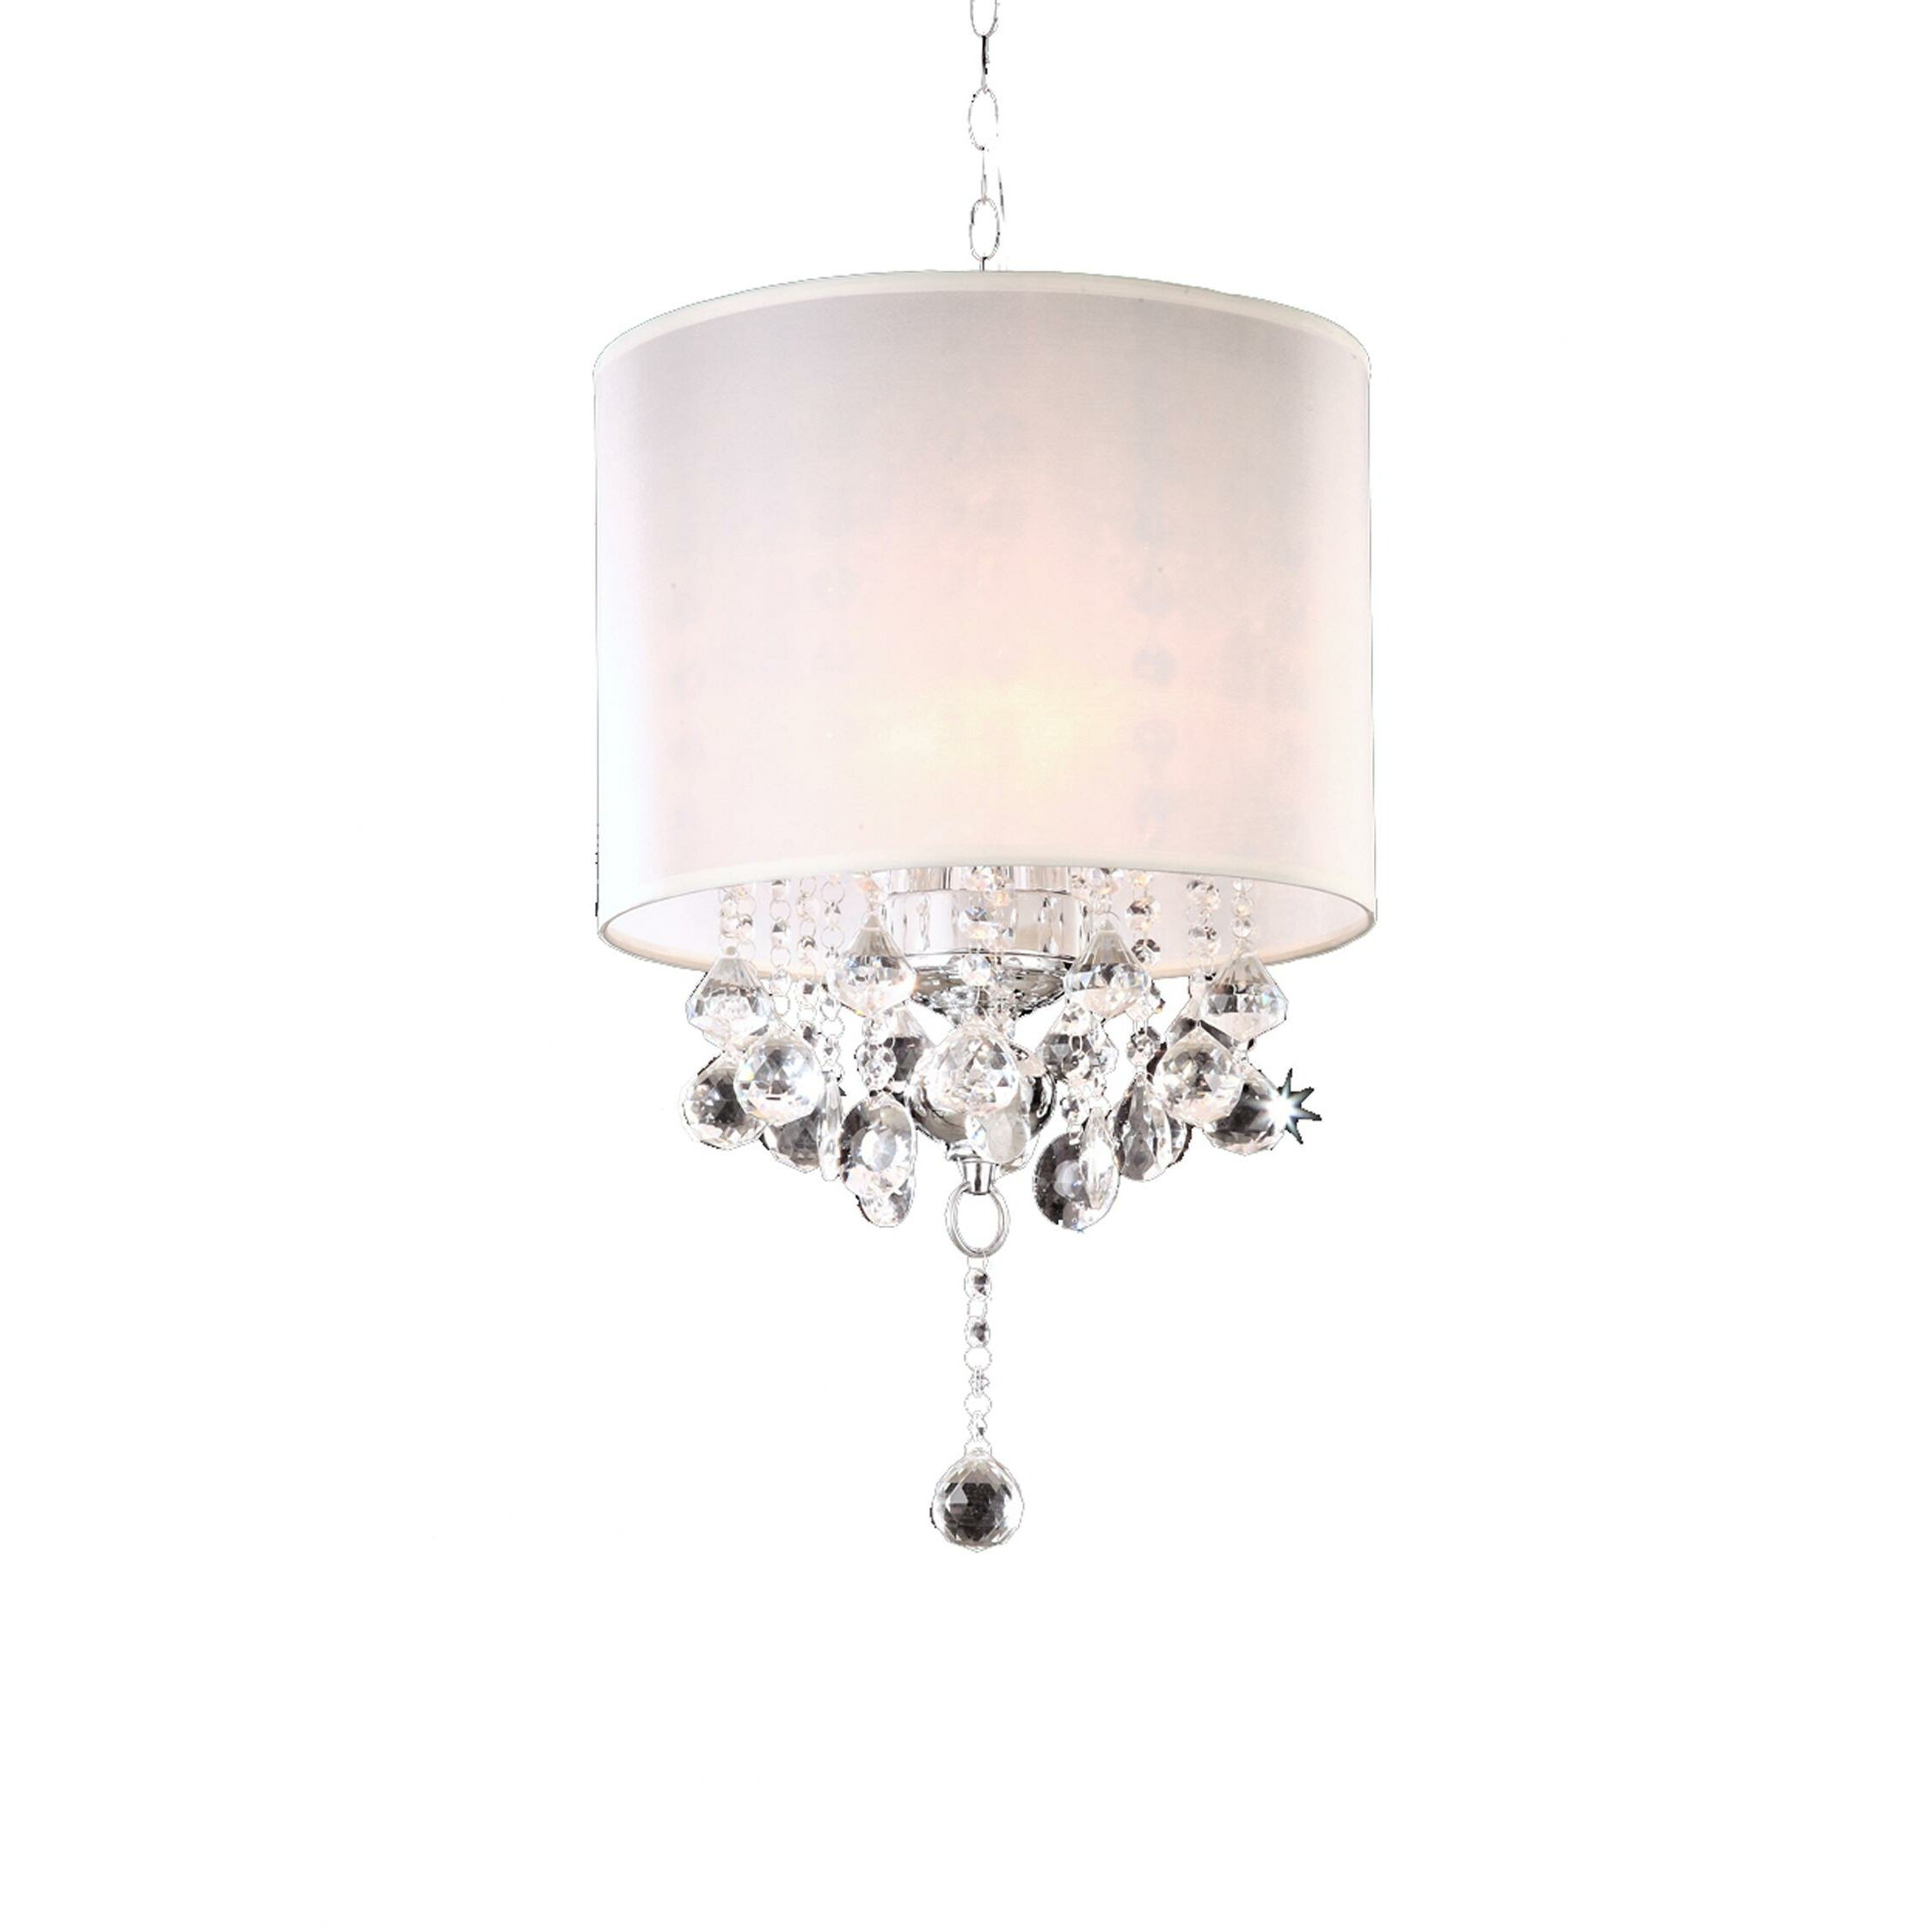 Wayfair Chandelier: OK Lighting 3 Light Crystal Chandelier & Reviews